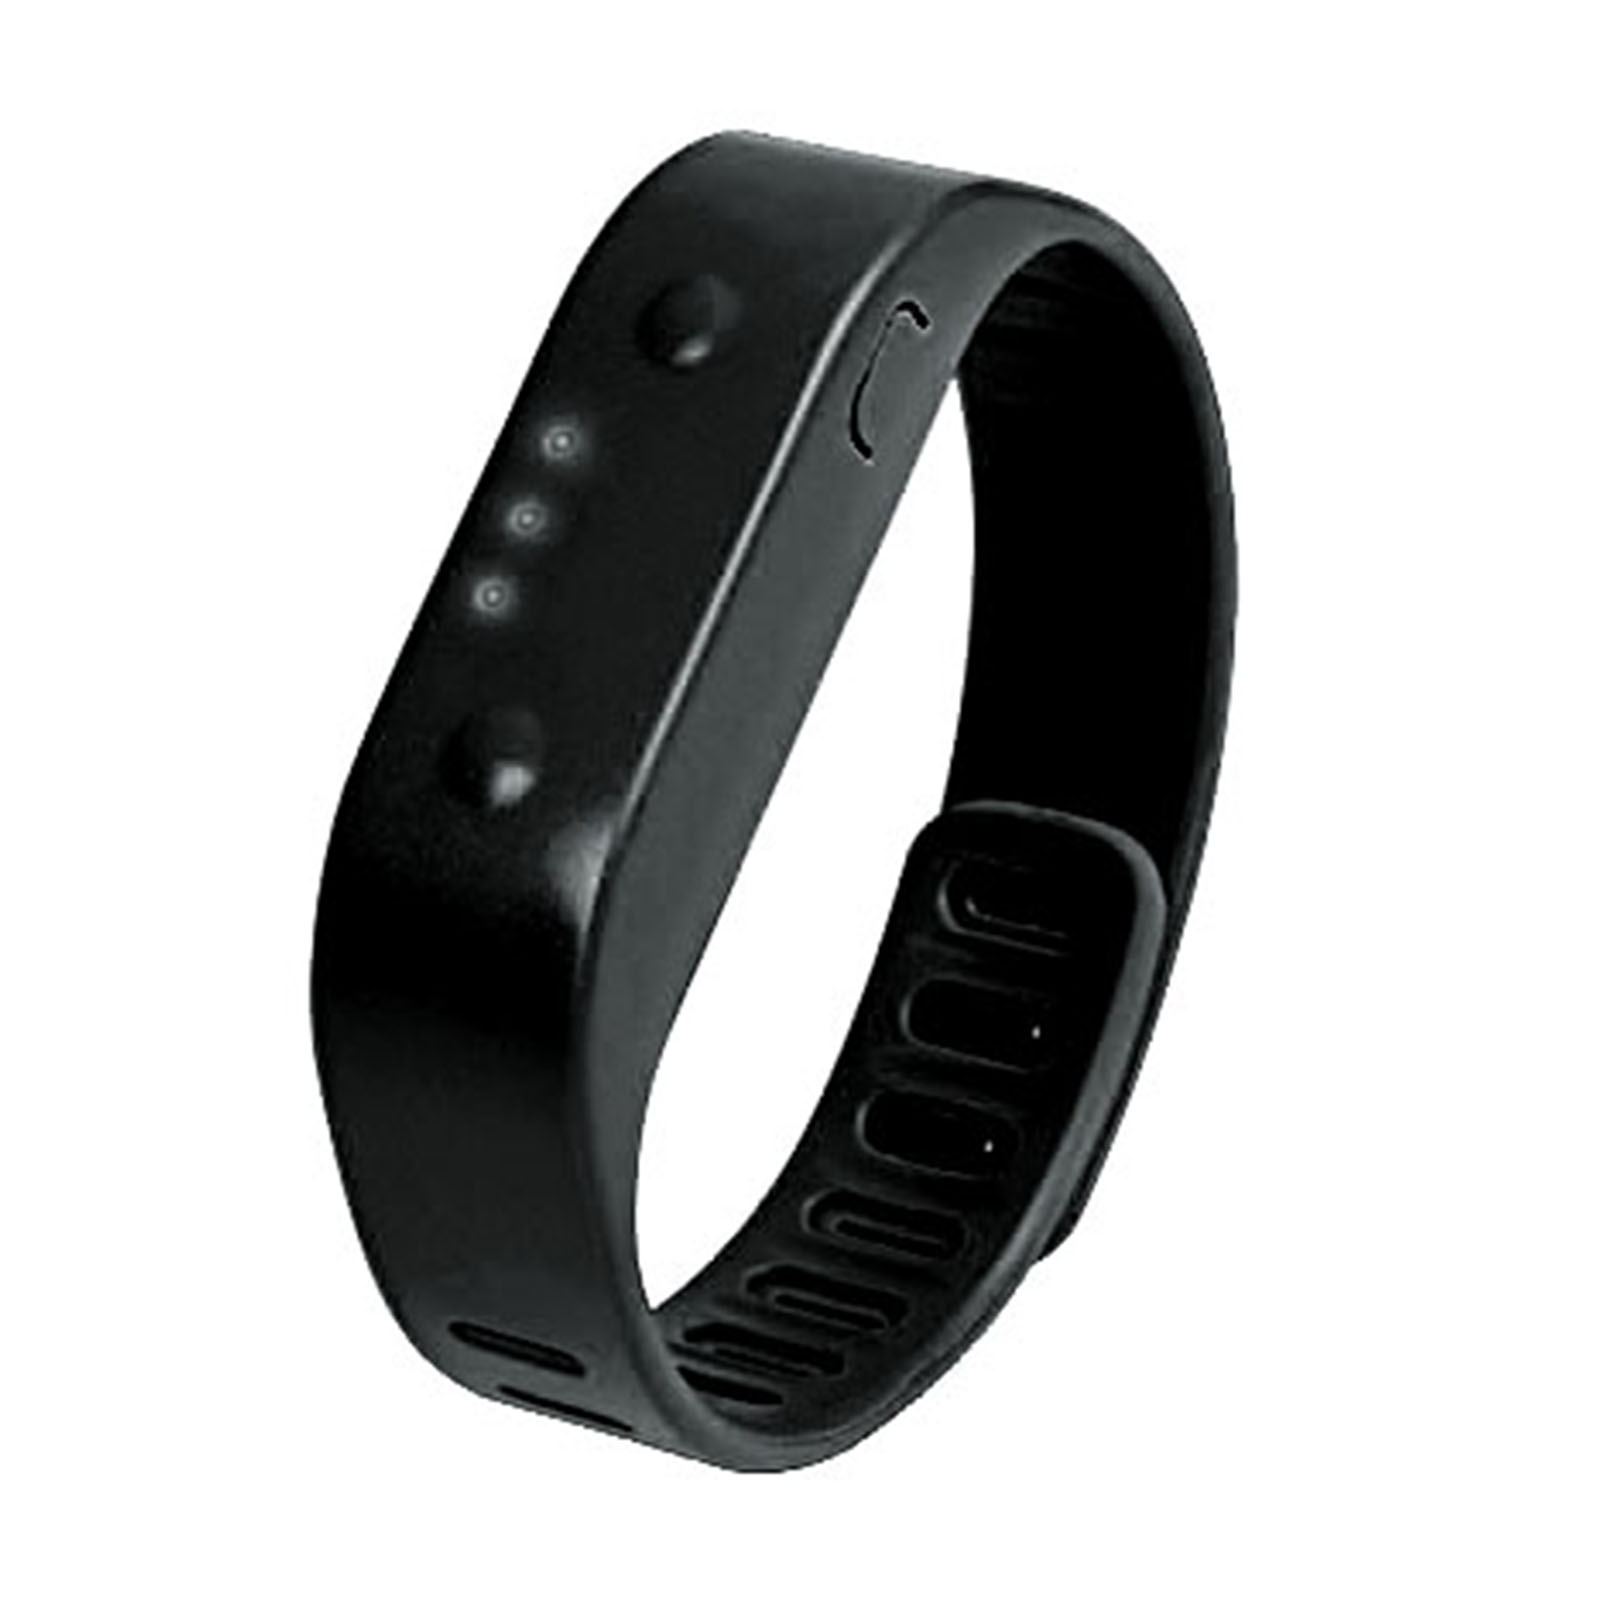 Naxa LifeForce+ Fitness Band